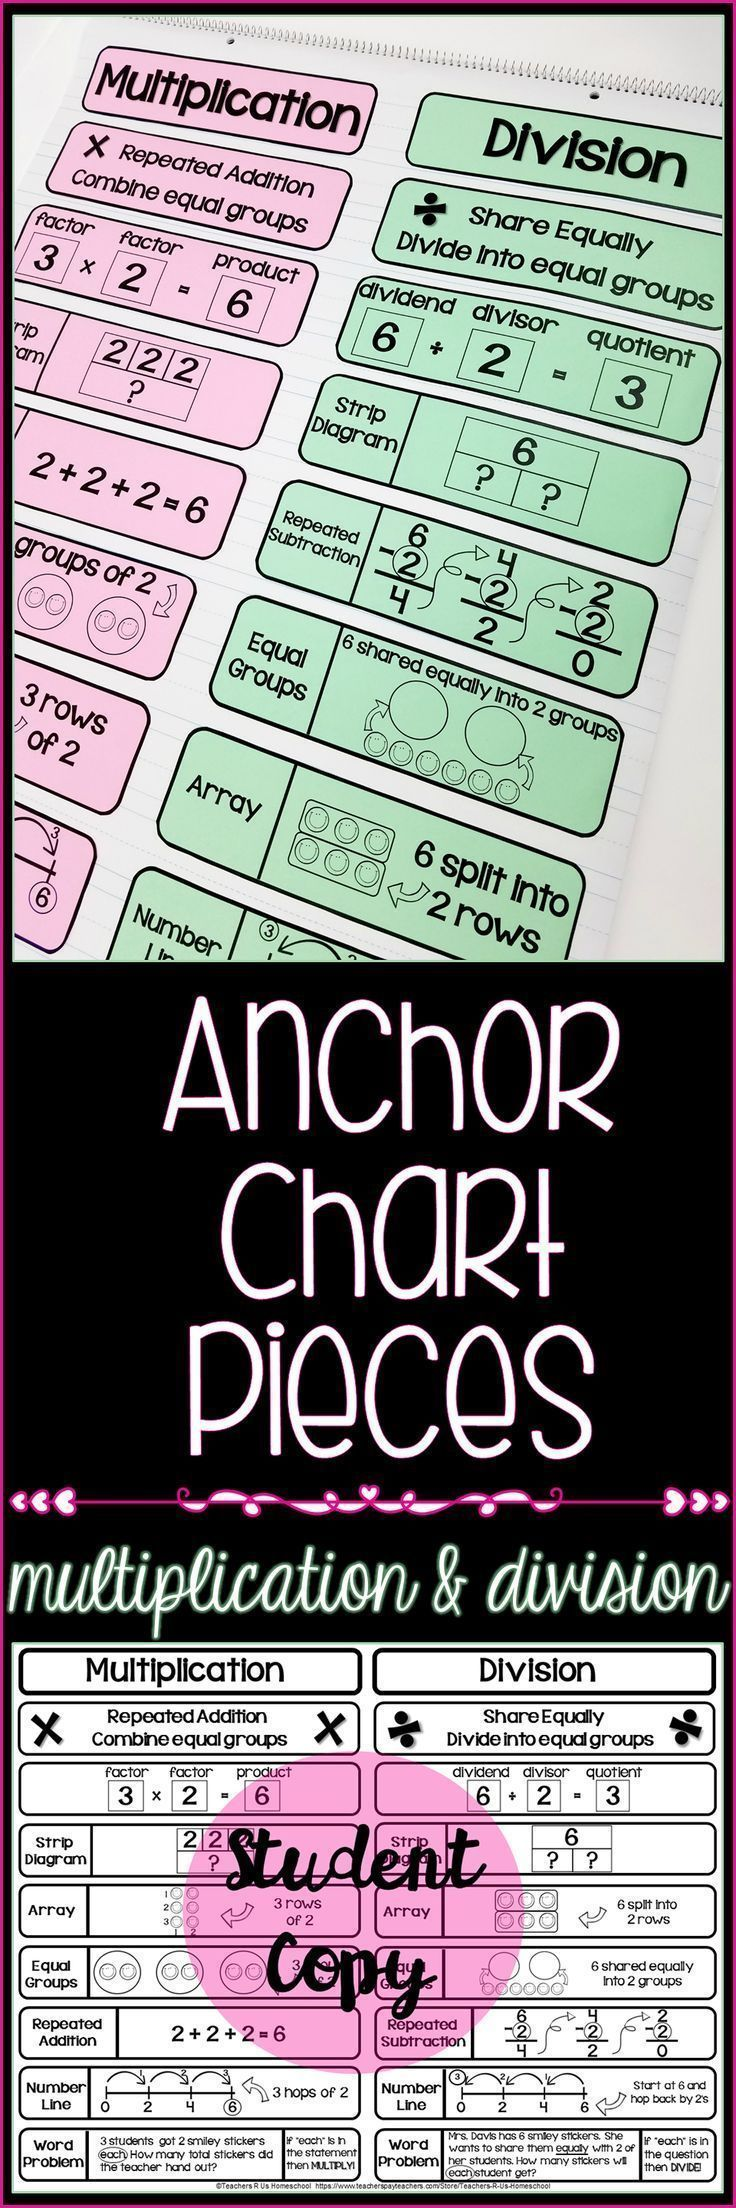 I love using anchor charts because they are an AWESOME tool to support instruction and move my students towards successful mastery of the lessons taught! Unfortunately, I have poor spatial judgement and my anchor charts never come out looking quite the way I'd like. This resource provides all of the components needed to assemble a Multiplication and Division Anchor Chart. A student copy is also included! Check out the preview for a more detailed look.